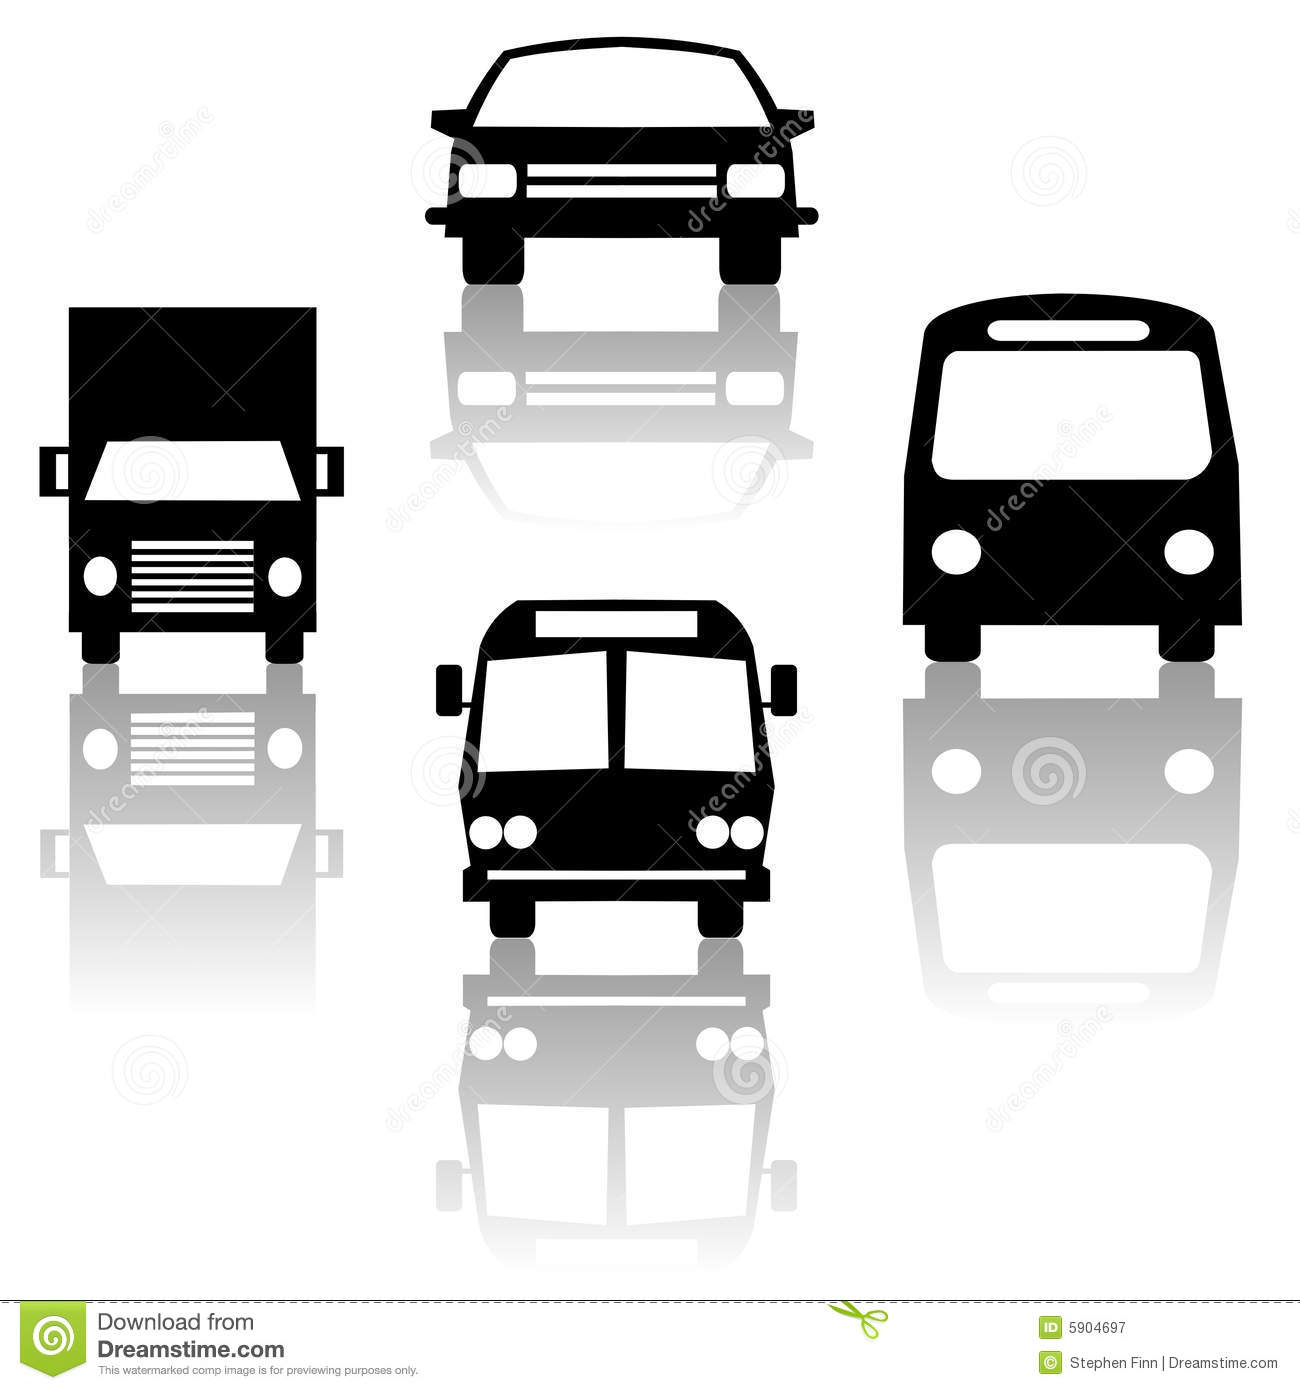 Royalty Free Stock Photography Bus Truck Car Train Silhouettes Image5904697 as well 373702 2005 Gmc Topkick Kodiak Custom Pickup Ex Sema Vehicle likewise 99 02 Silverado Off Road Fiberglass further 2017 ford f 250 as well Iveco Stralis Interiorexterior Rework 2. on truck grill lights